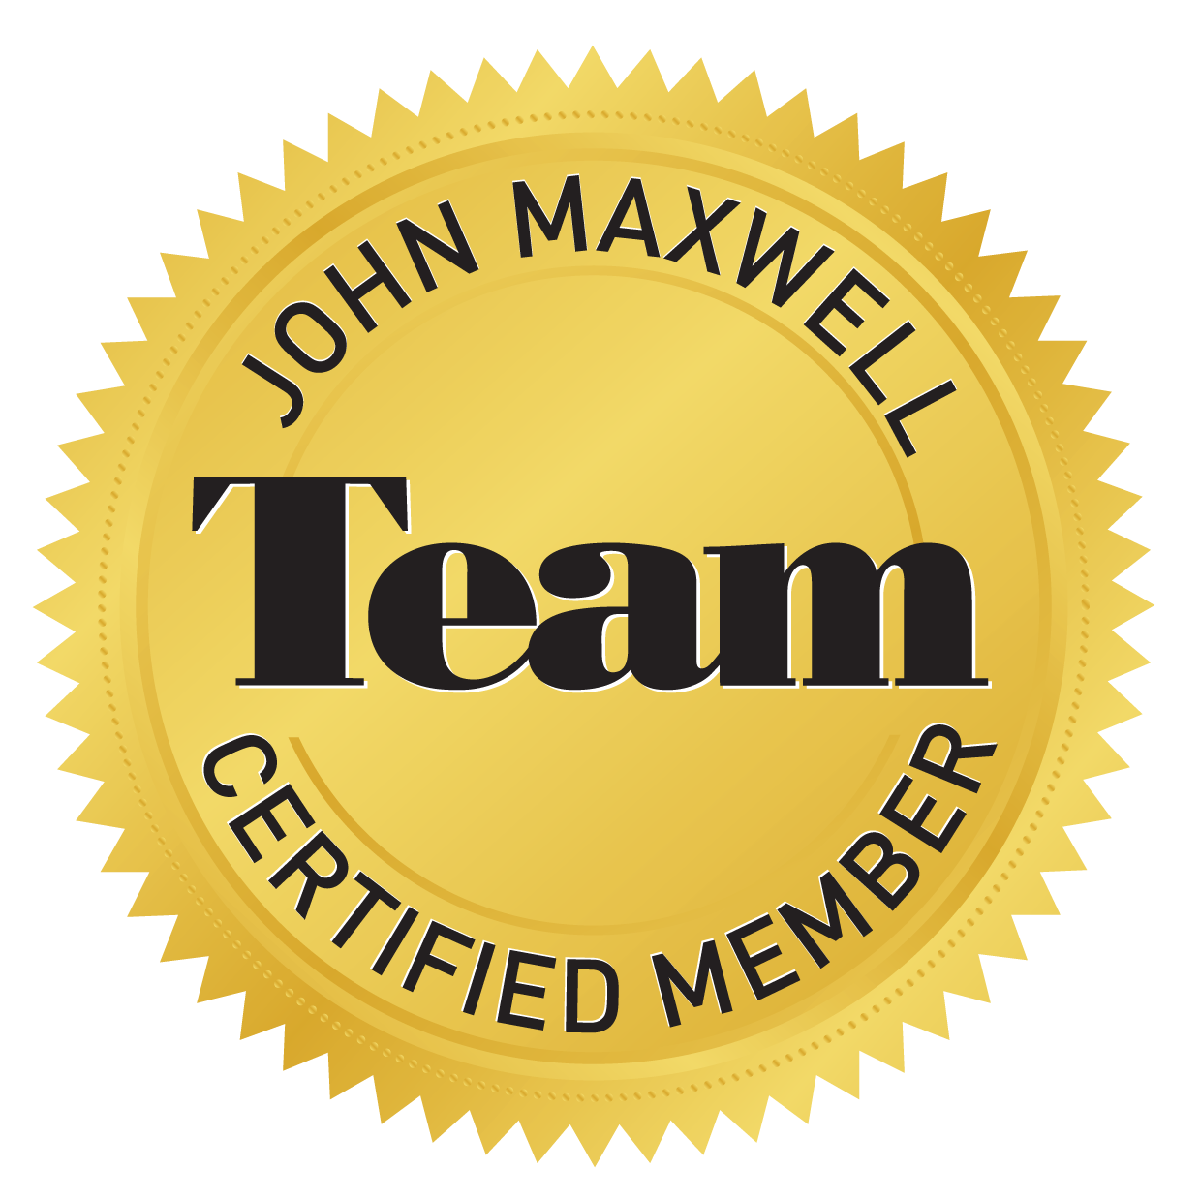 John Maxwell Team Certified Member Fredie C. Smith